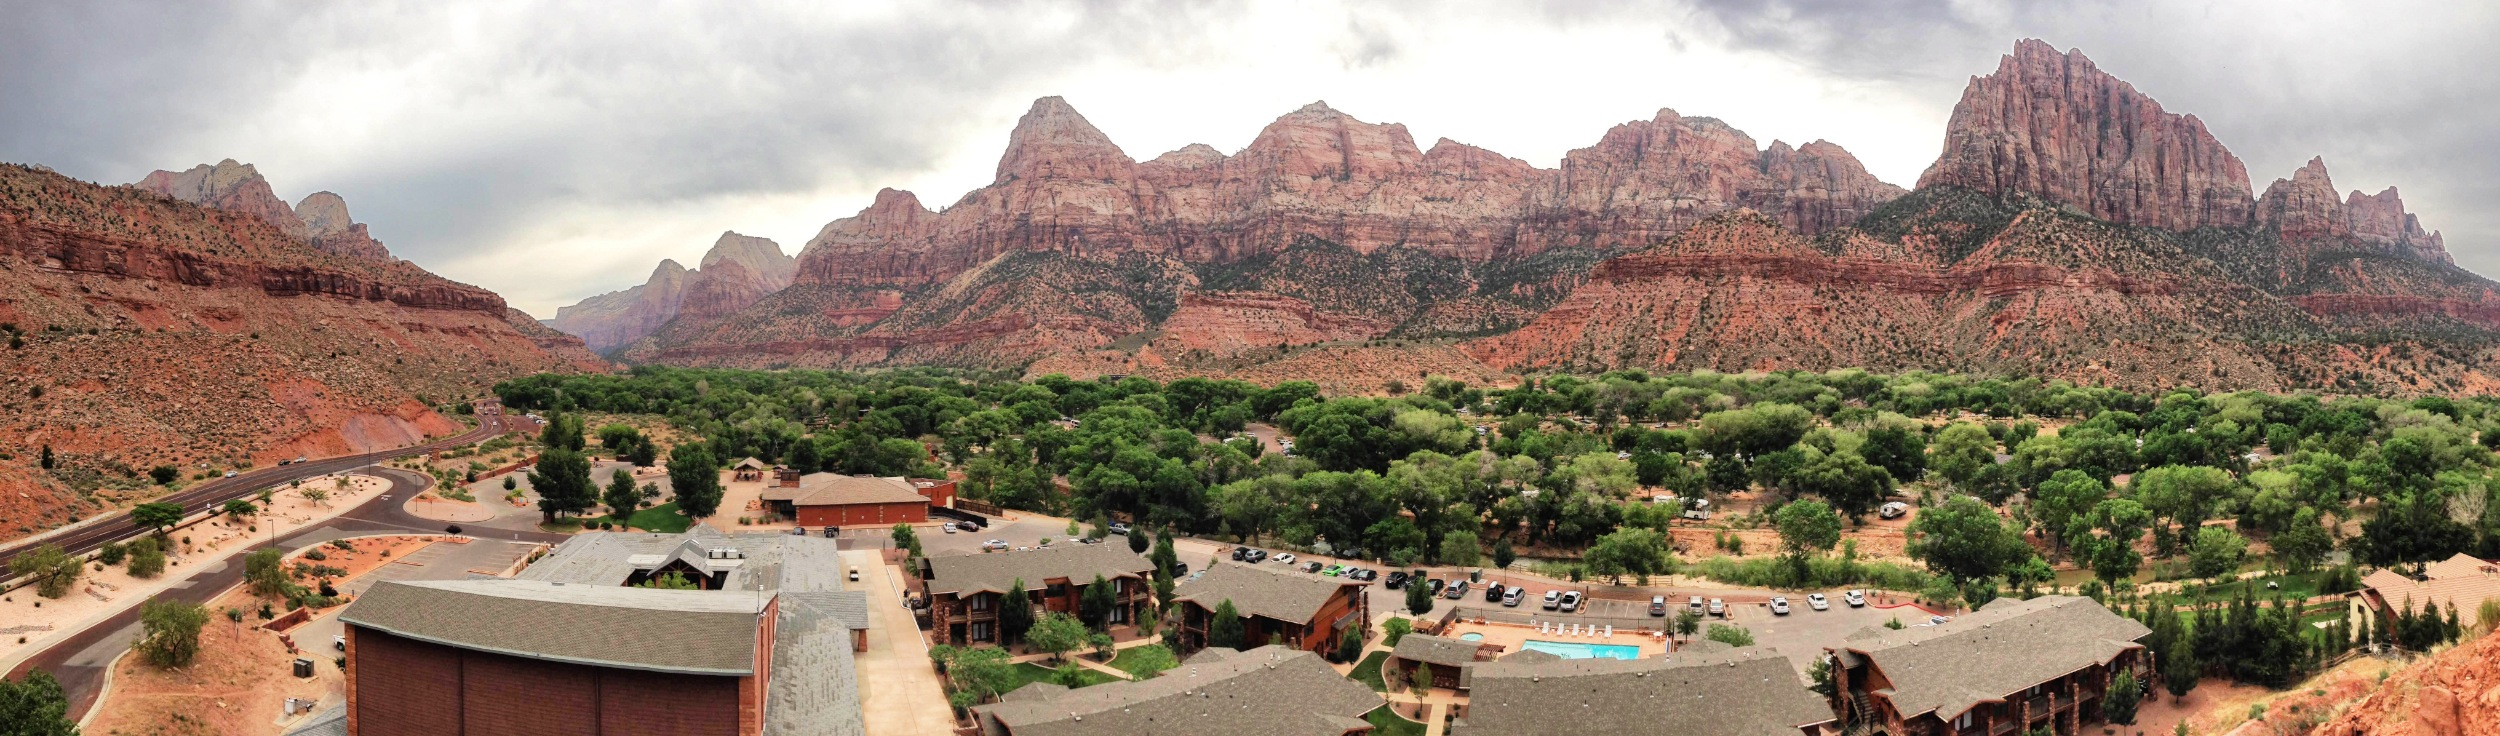 While you stay at Cable Mountain Lodge, visit Zion Canyon Village!